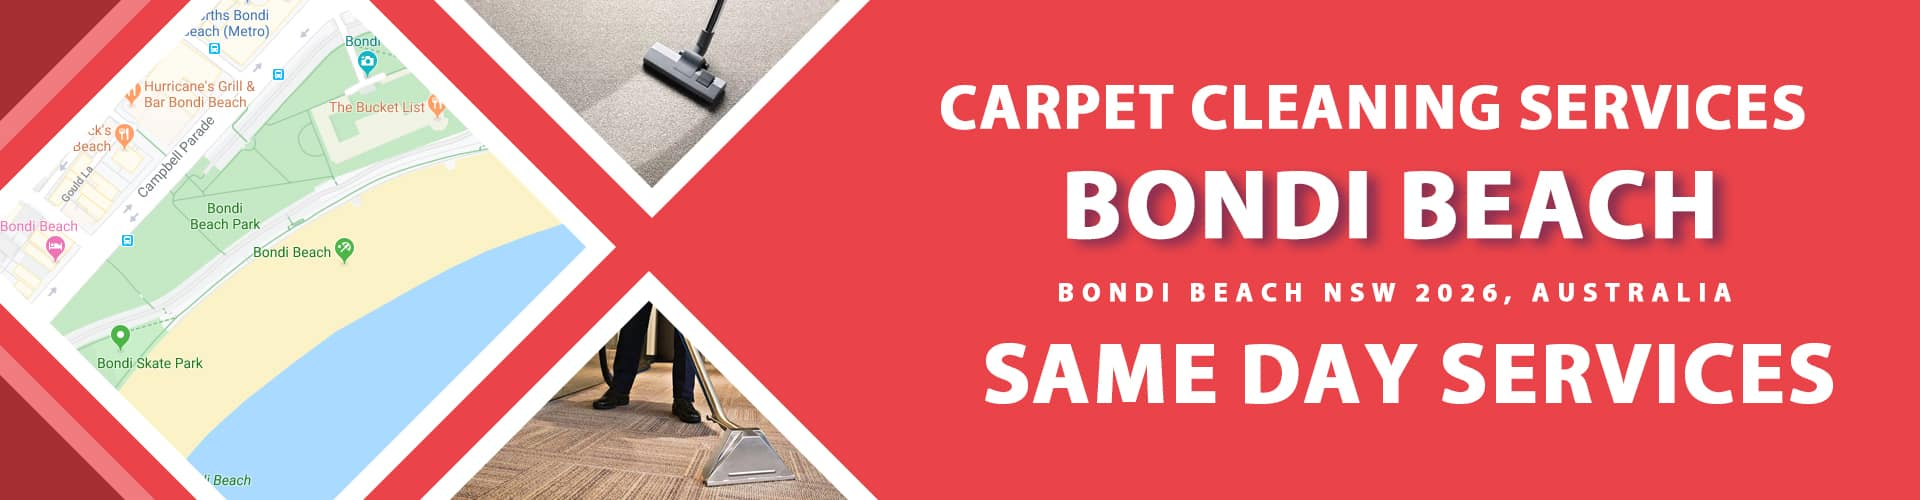 Carpet Cleaning Bondi Beach